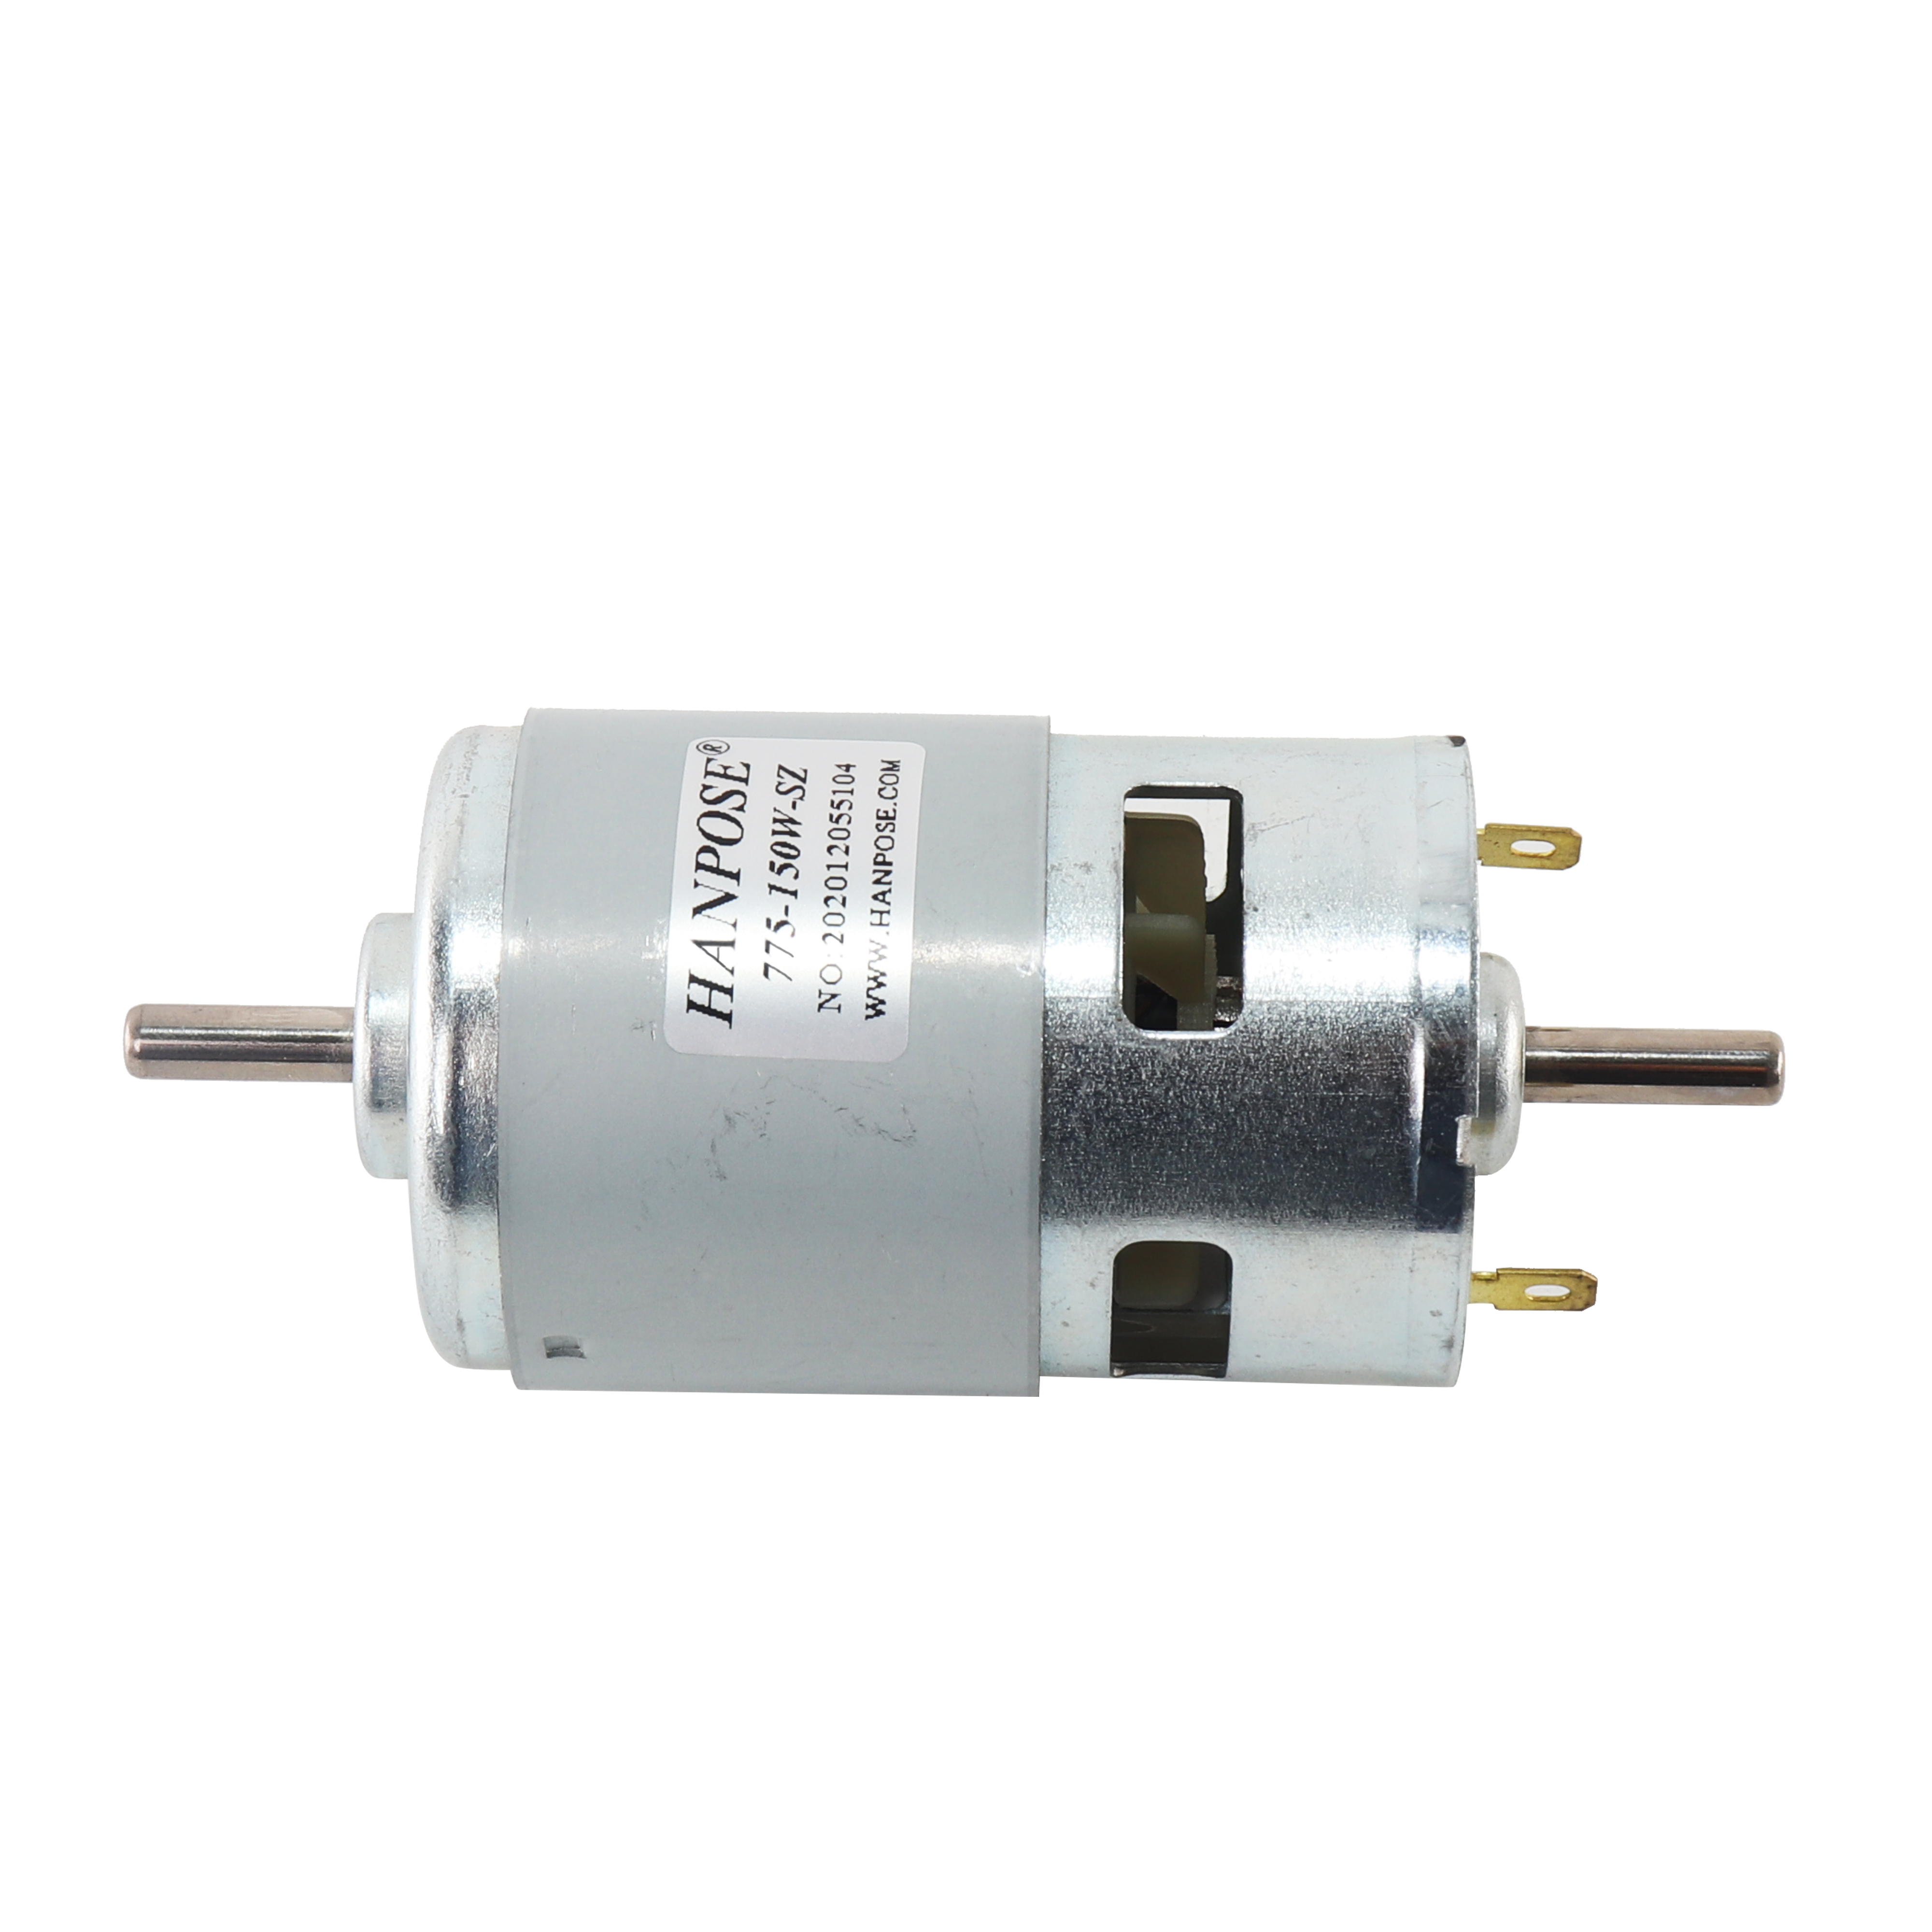 80w 150w 288w 775 Spindle Motor Ball Bearings High Power Motors with Spindle